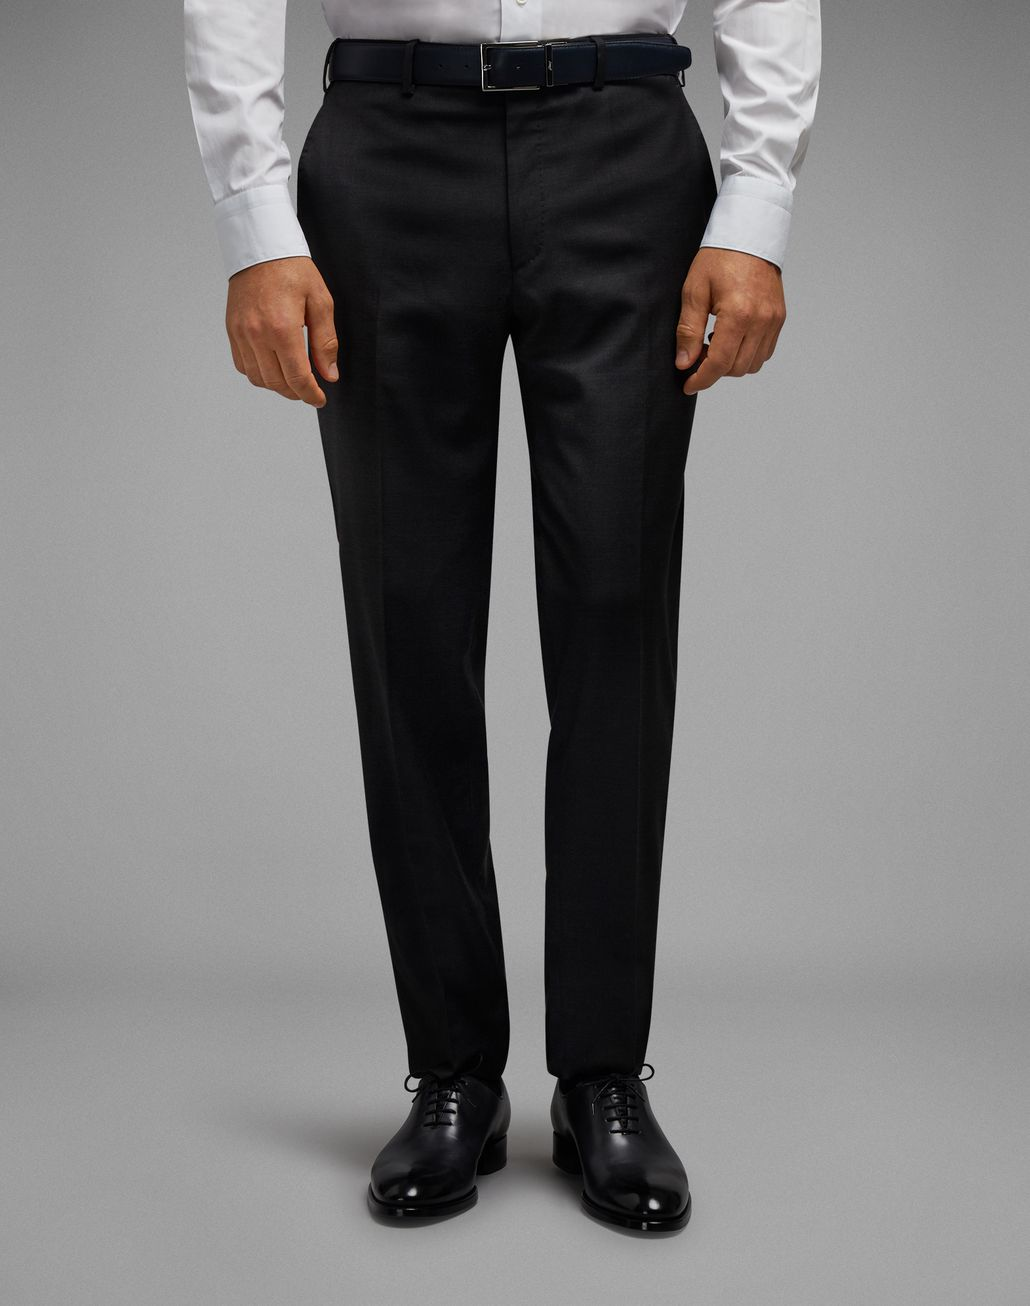 BRIONI 'Essential' Grey Tigullio Trousers Trousers Man r